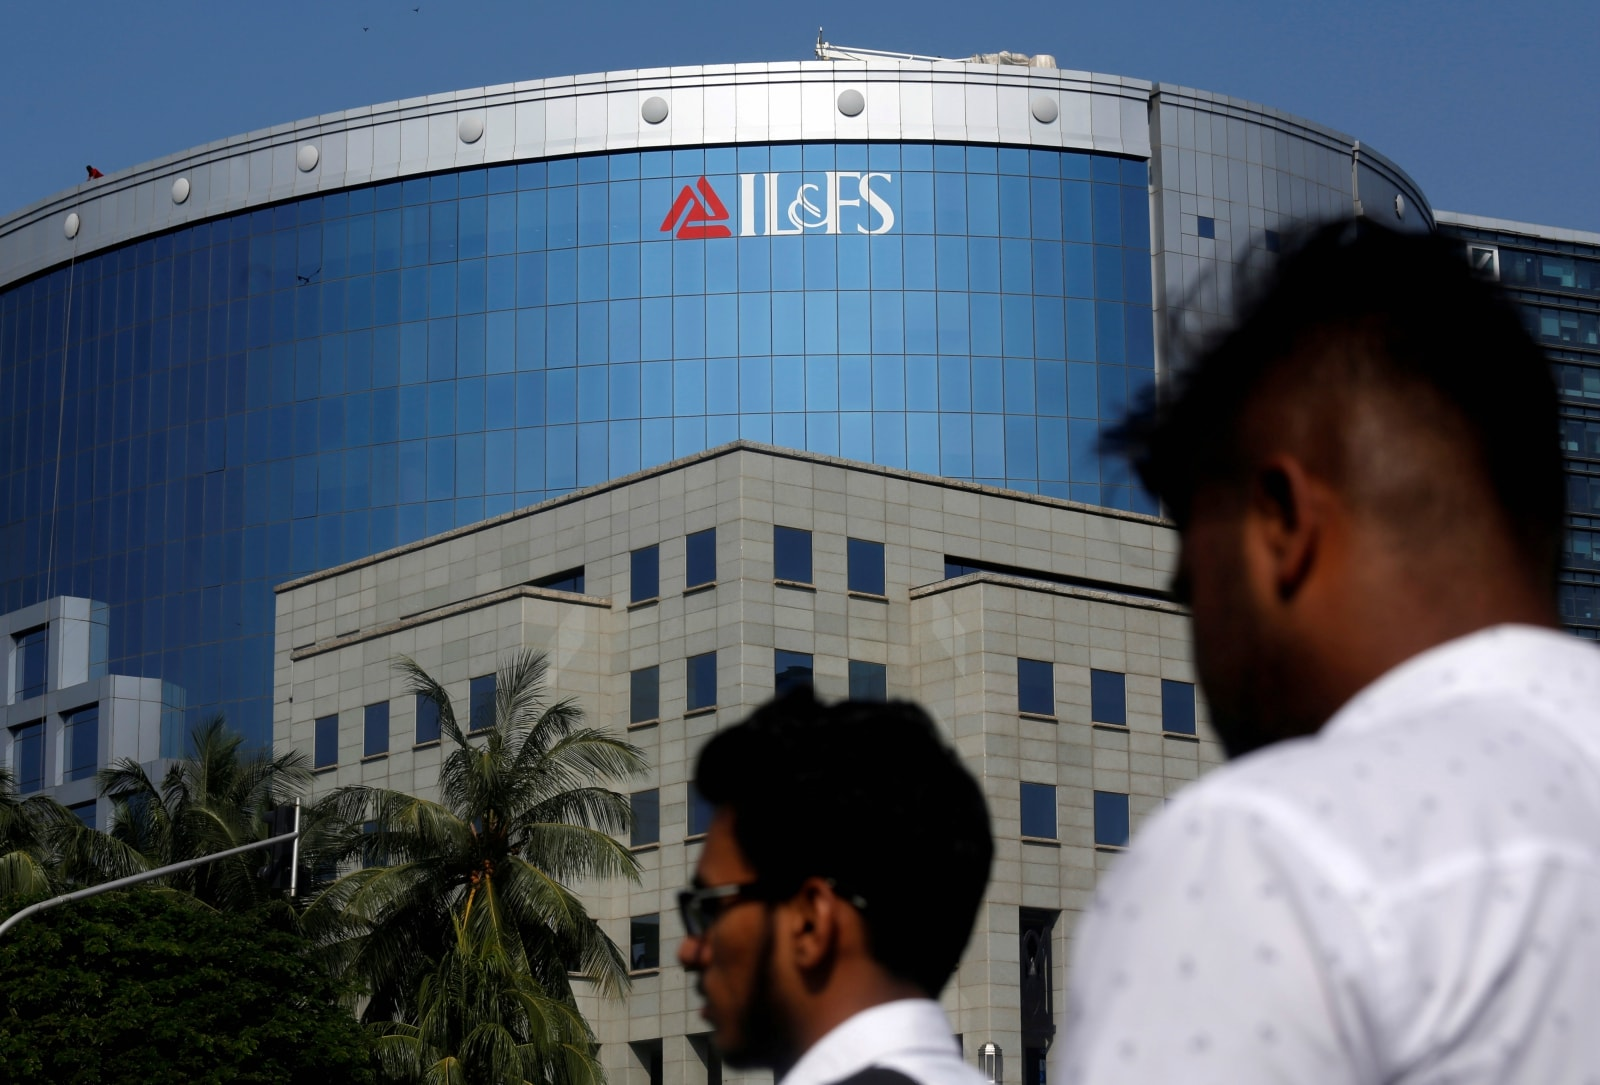 10. IL&FS: A large number of individuals and entities, including independent directors, top management personnel, rating agencies and auditors formerly associated with crisis-hit IL&FS may soon face action by capital market regulator Sebi for their role in the alleged fraud at the group. Sebi has been conducting an in-depth investigation into the role of several entities and individuals, including for suspected violation of disclosure and corporate governance norms, and many of them would soon face stringent penal action for hurting the interest of minority shareholders and the overall capital markets with their fraudulent actions, senior officials said. (Image: Reuters)